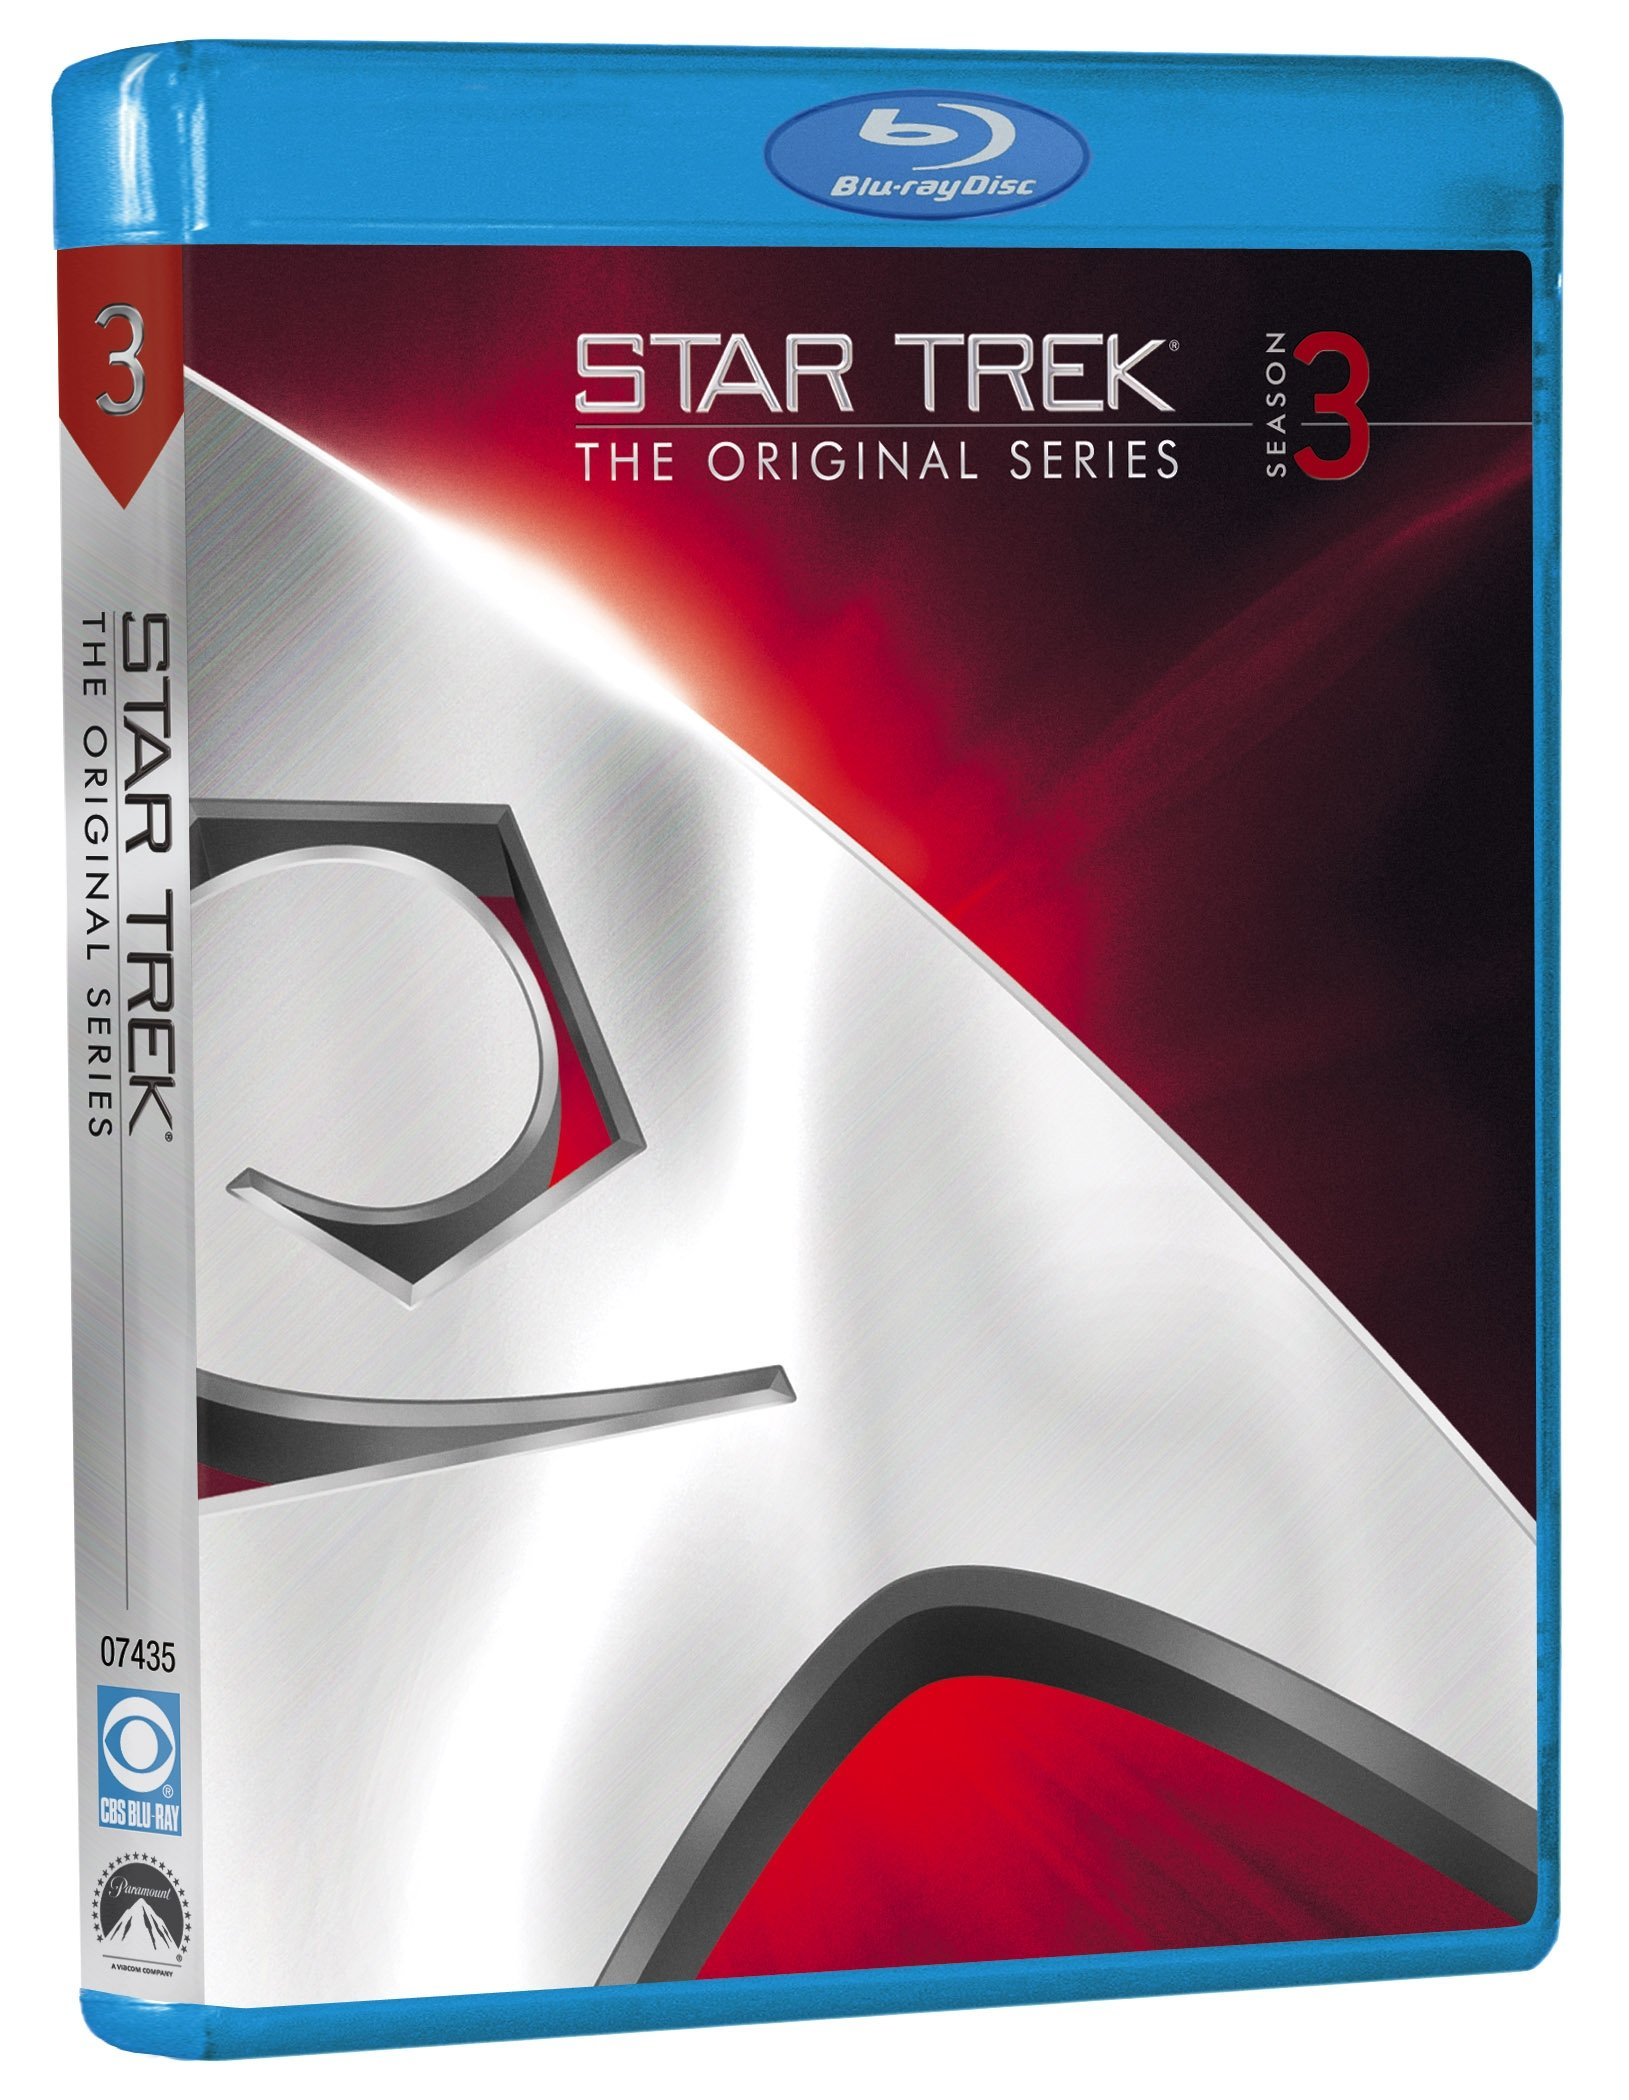 Blu-ray : Star Trek: The Original Series: Season 3 (, Dubbed, Dolby, AC-3, Digital Theater System)